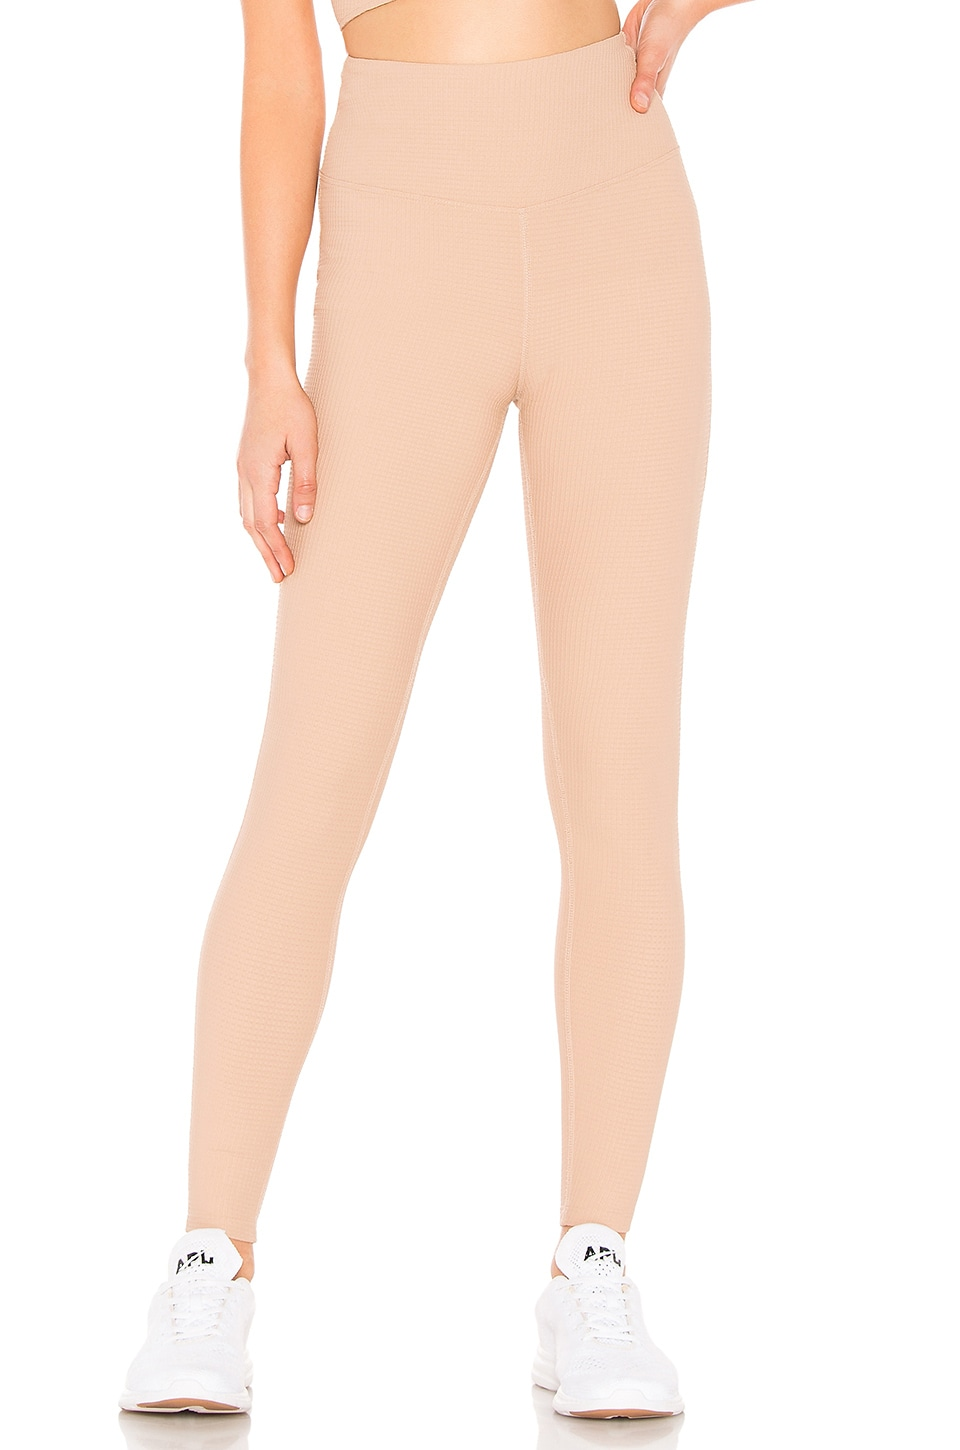 YEAR OF OURS Aspen Legging in Tan